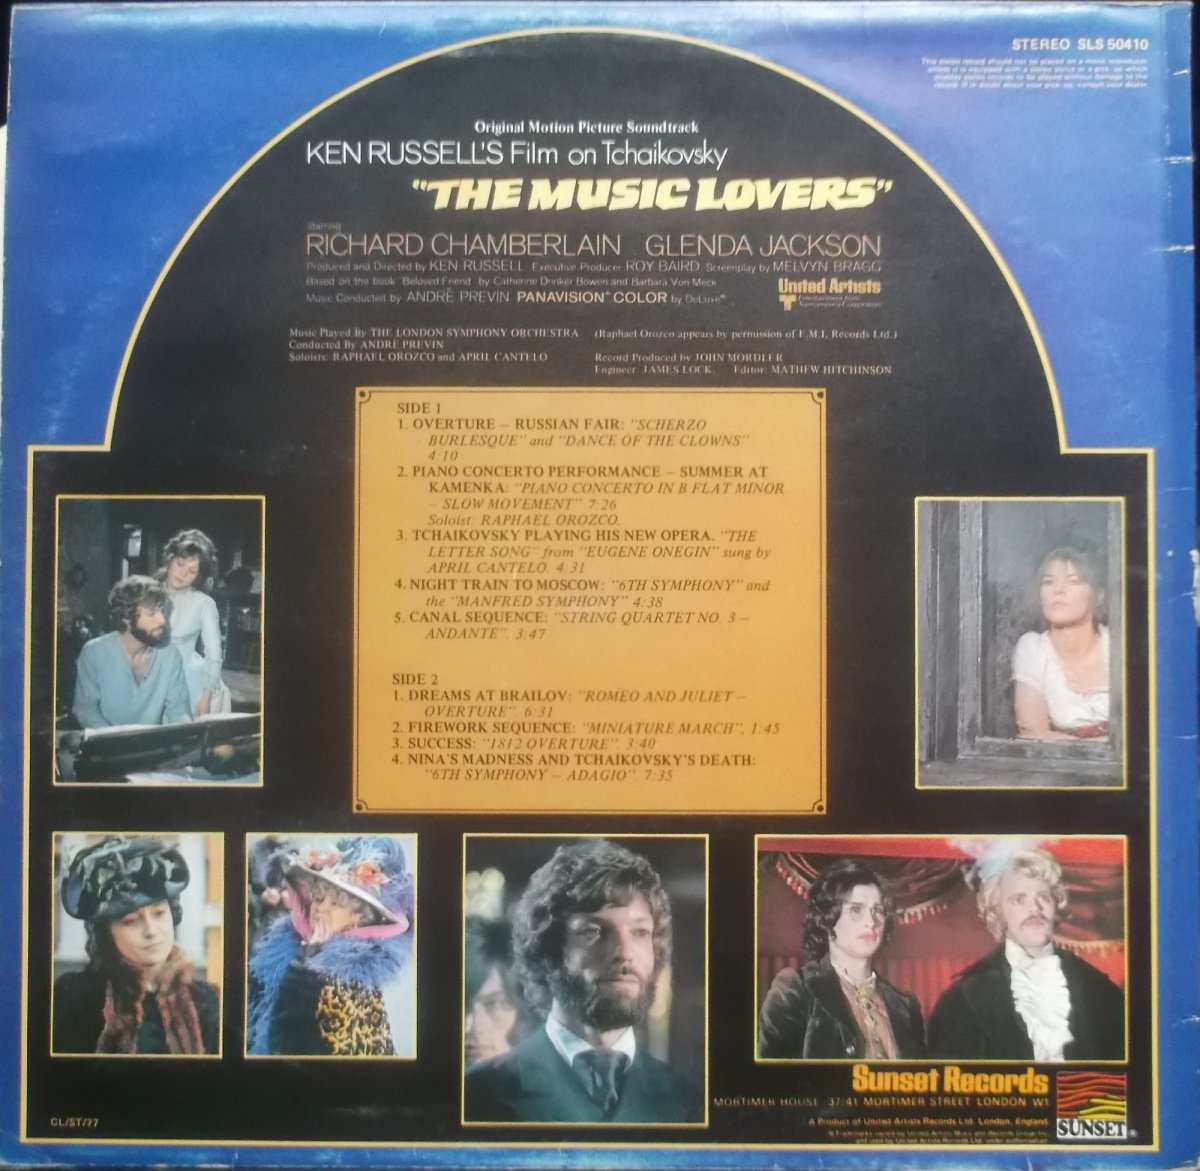 The Music Lovers - Original Motion Picture Soundtrack